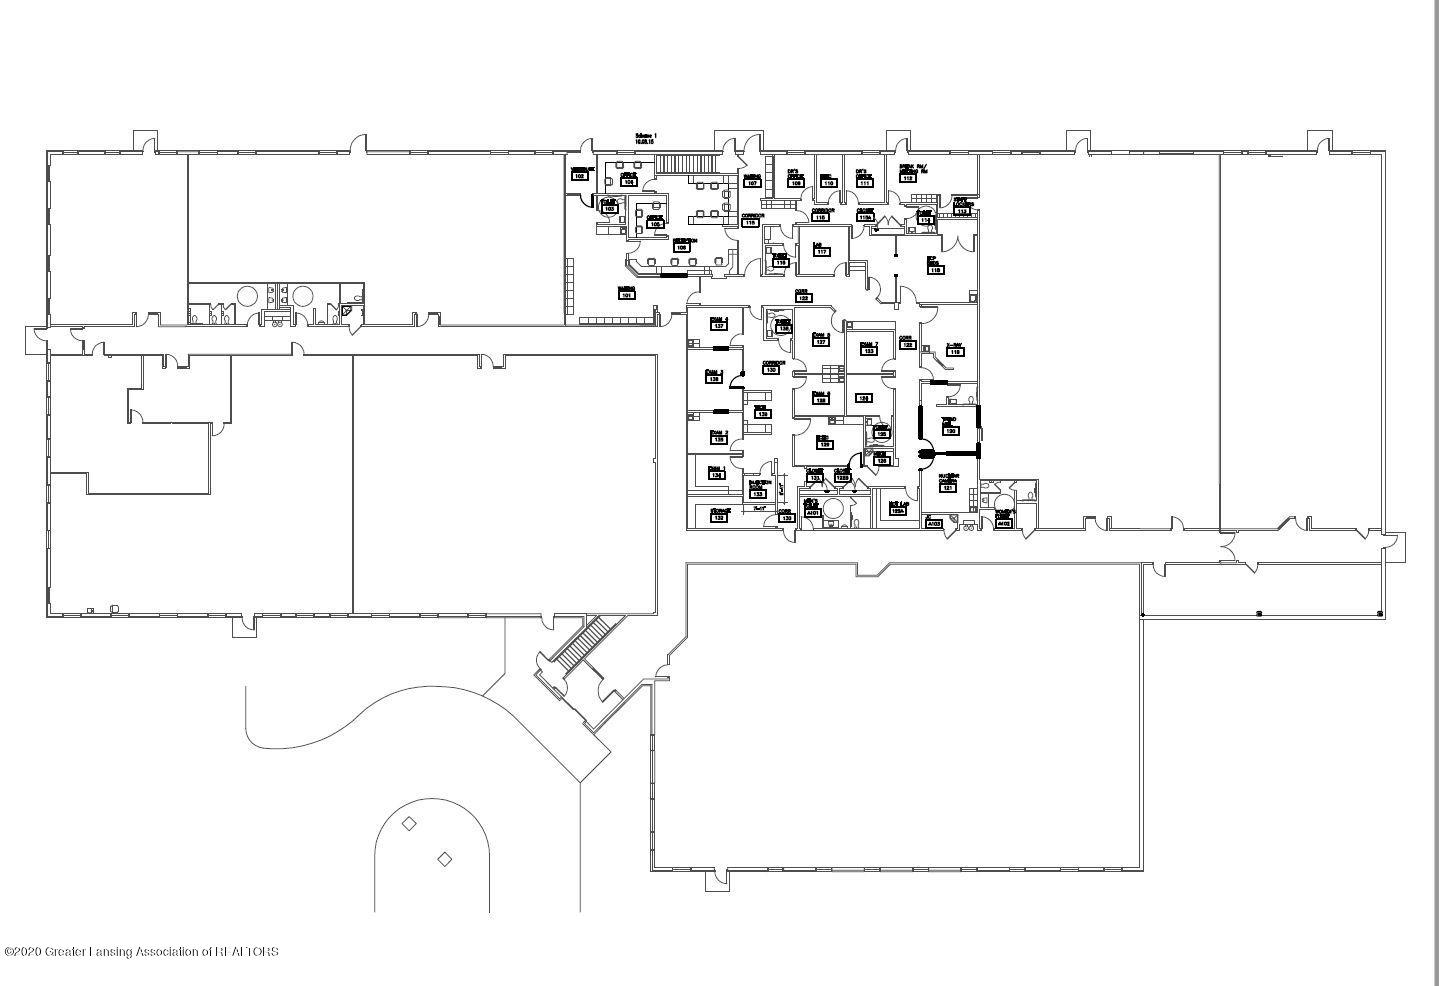 3960 Patient Care Dr 3 - Space in Building - 3